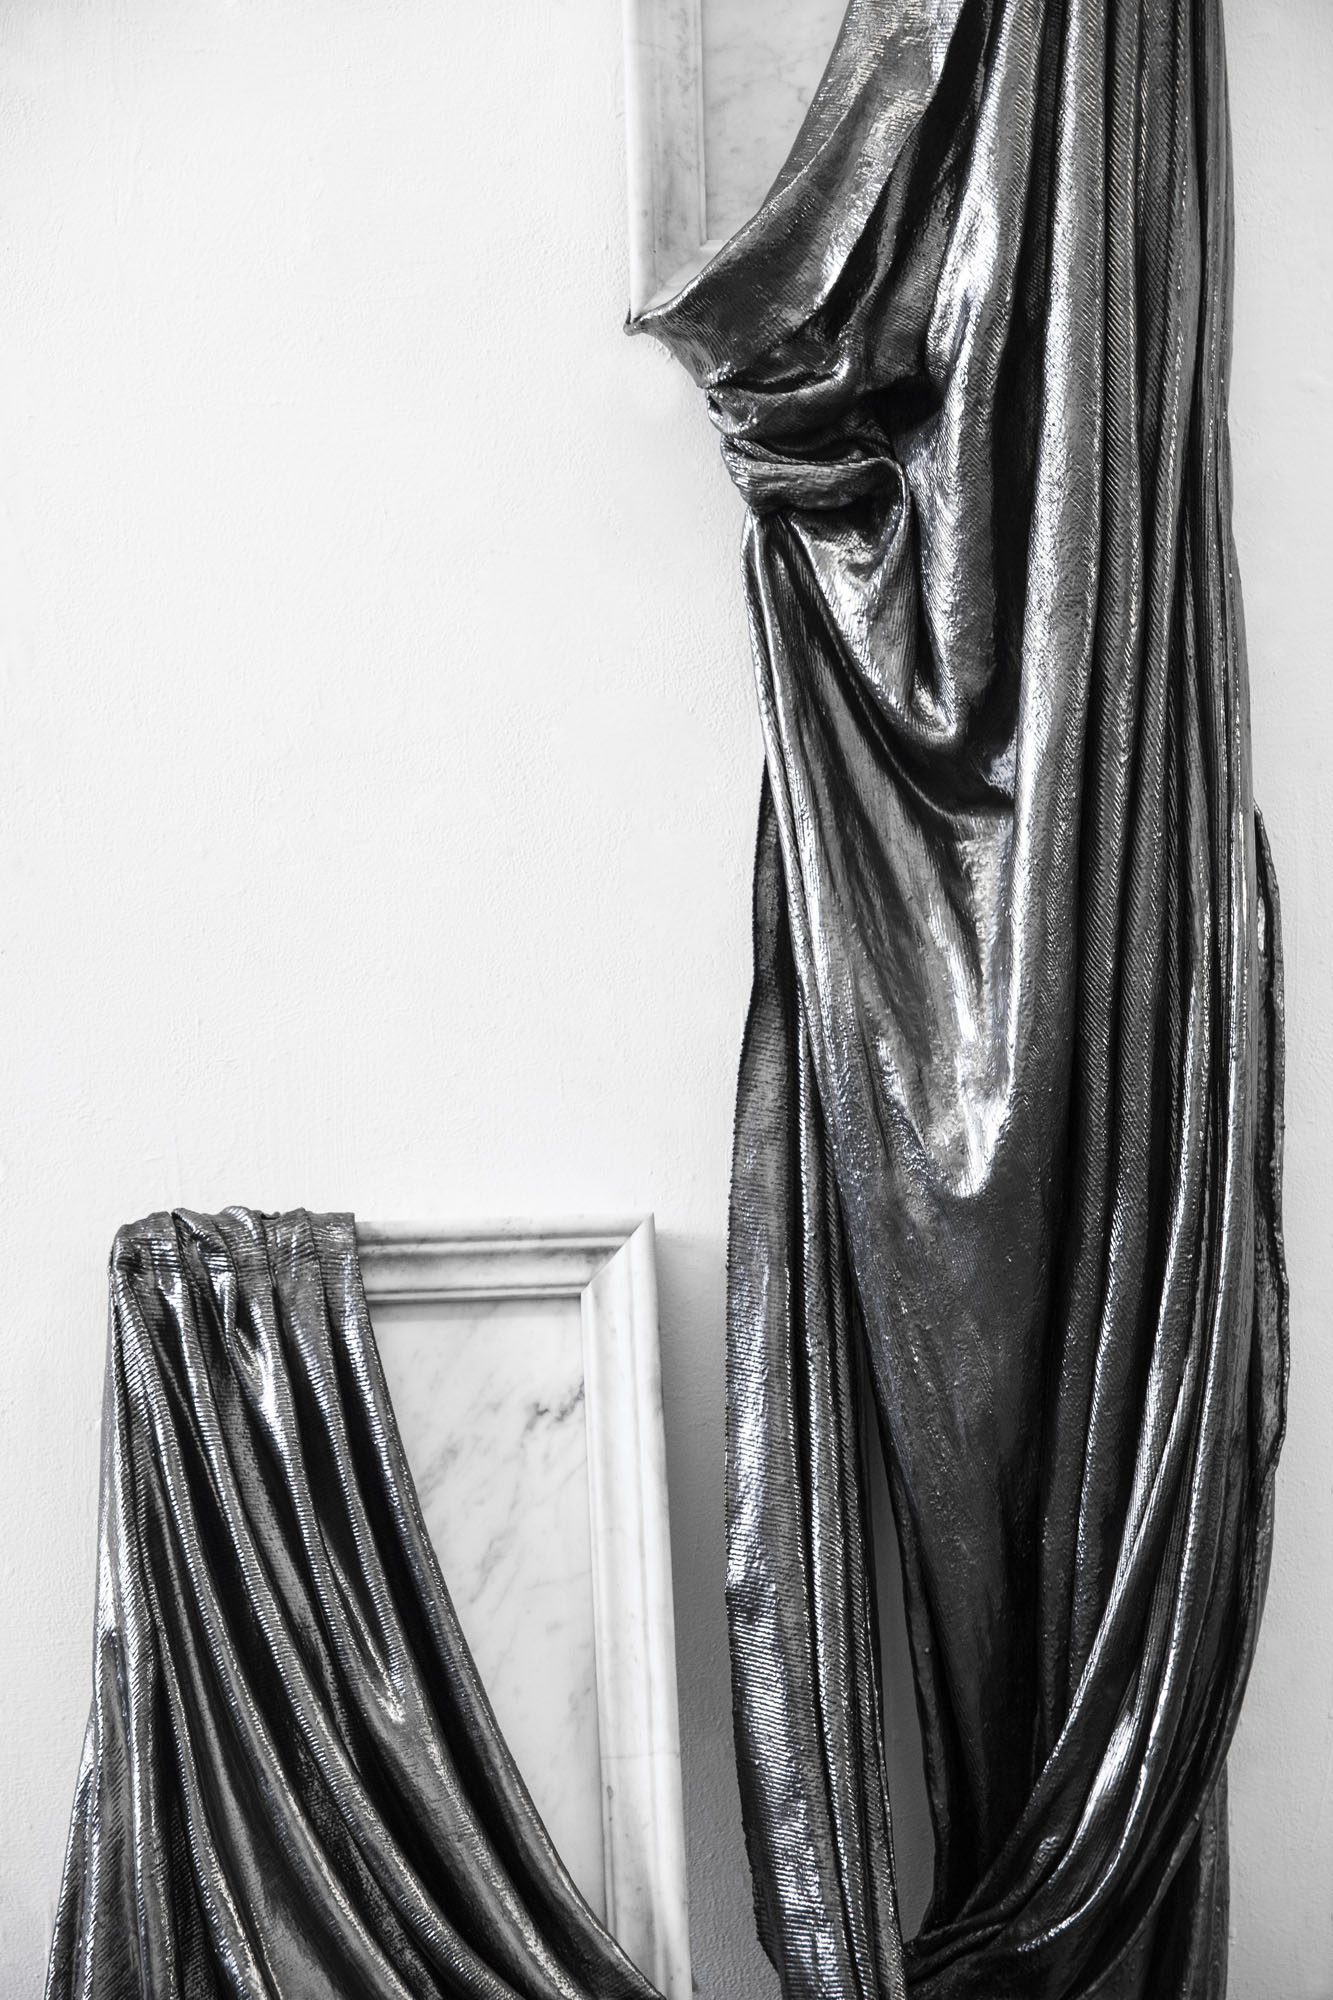 Lauren Seiden  Shields of Armor, I Turn and Burn  (detail), 2019 Marble, graphite pencil, fabric and mixed mediums Dimensions variable: 68 x 38 x 14.5 x 33 inches (172.72 x 96.52 x 39.37 x 83.82 cm)